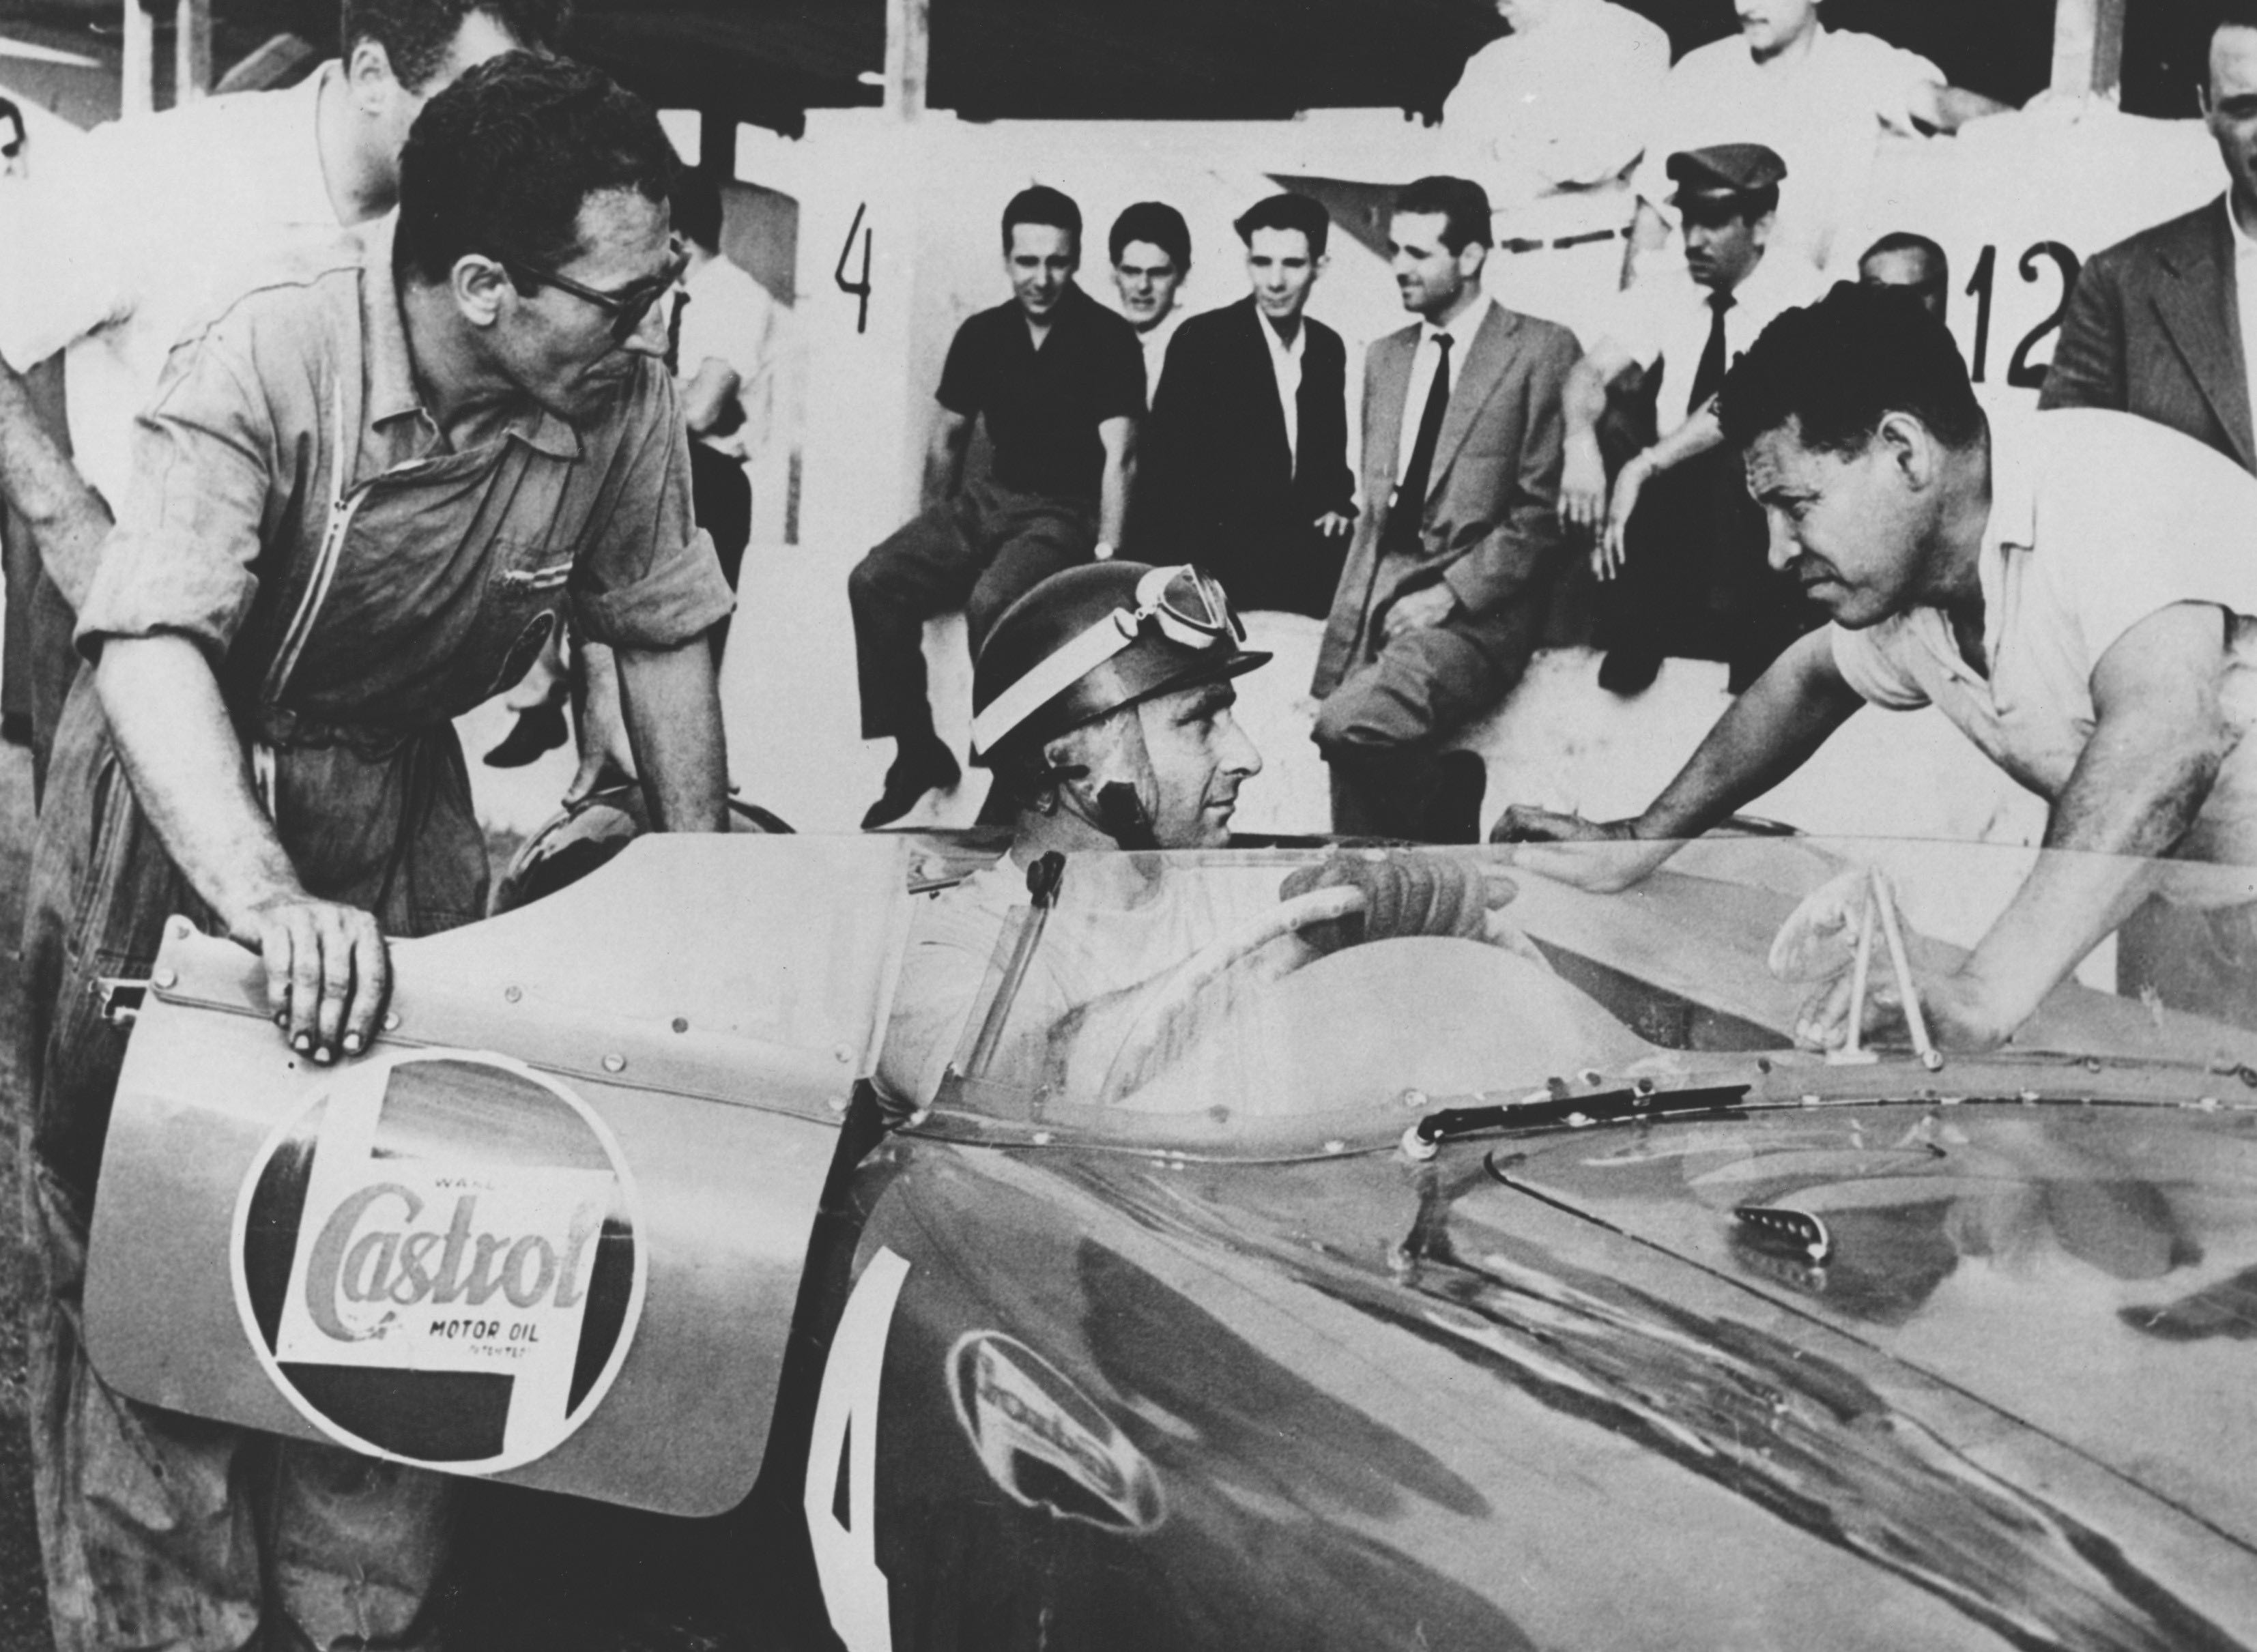 Fangio ready to race the 300 S